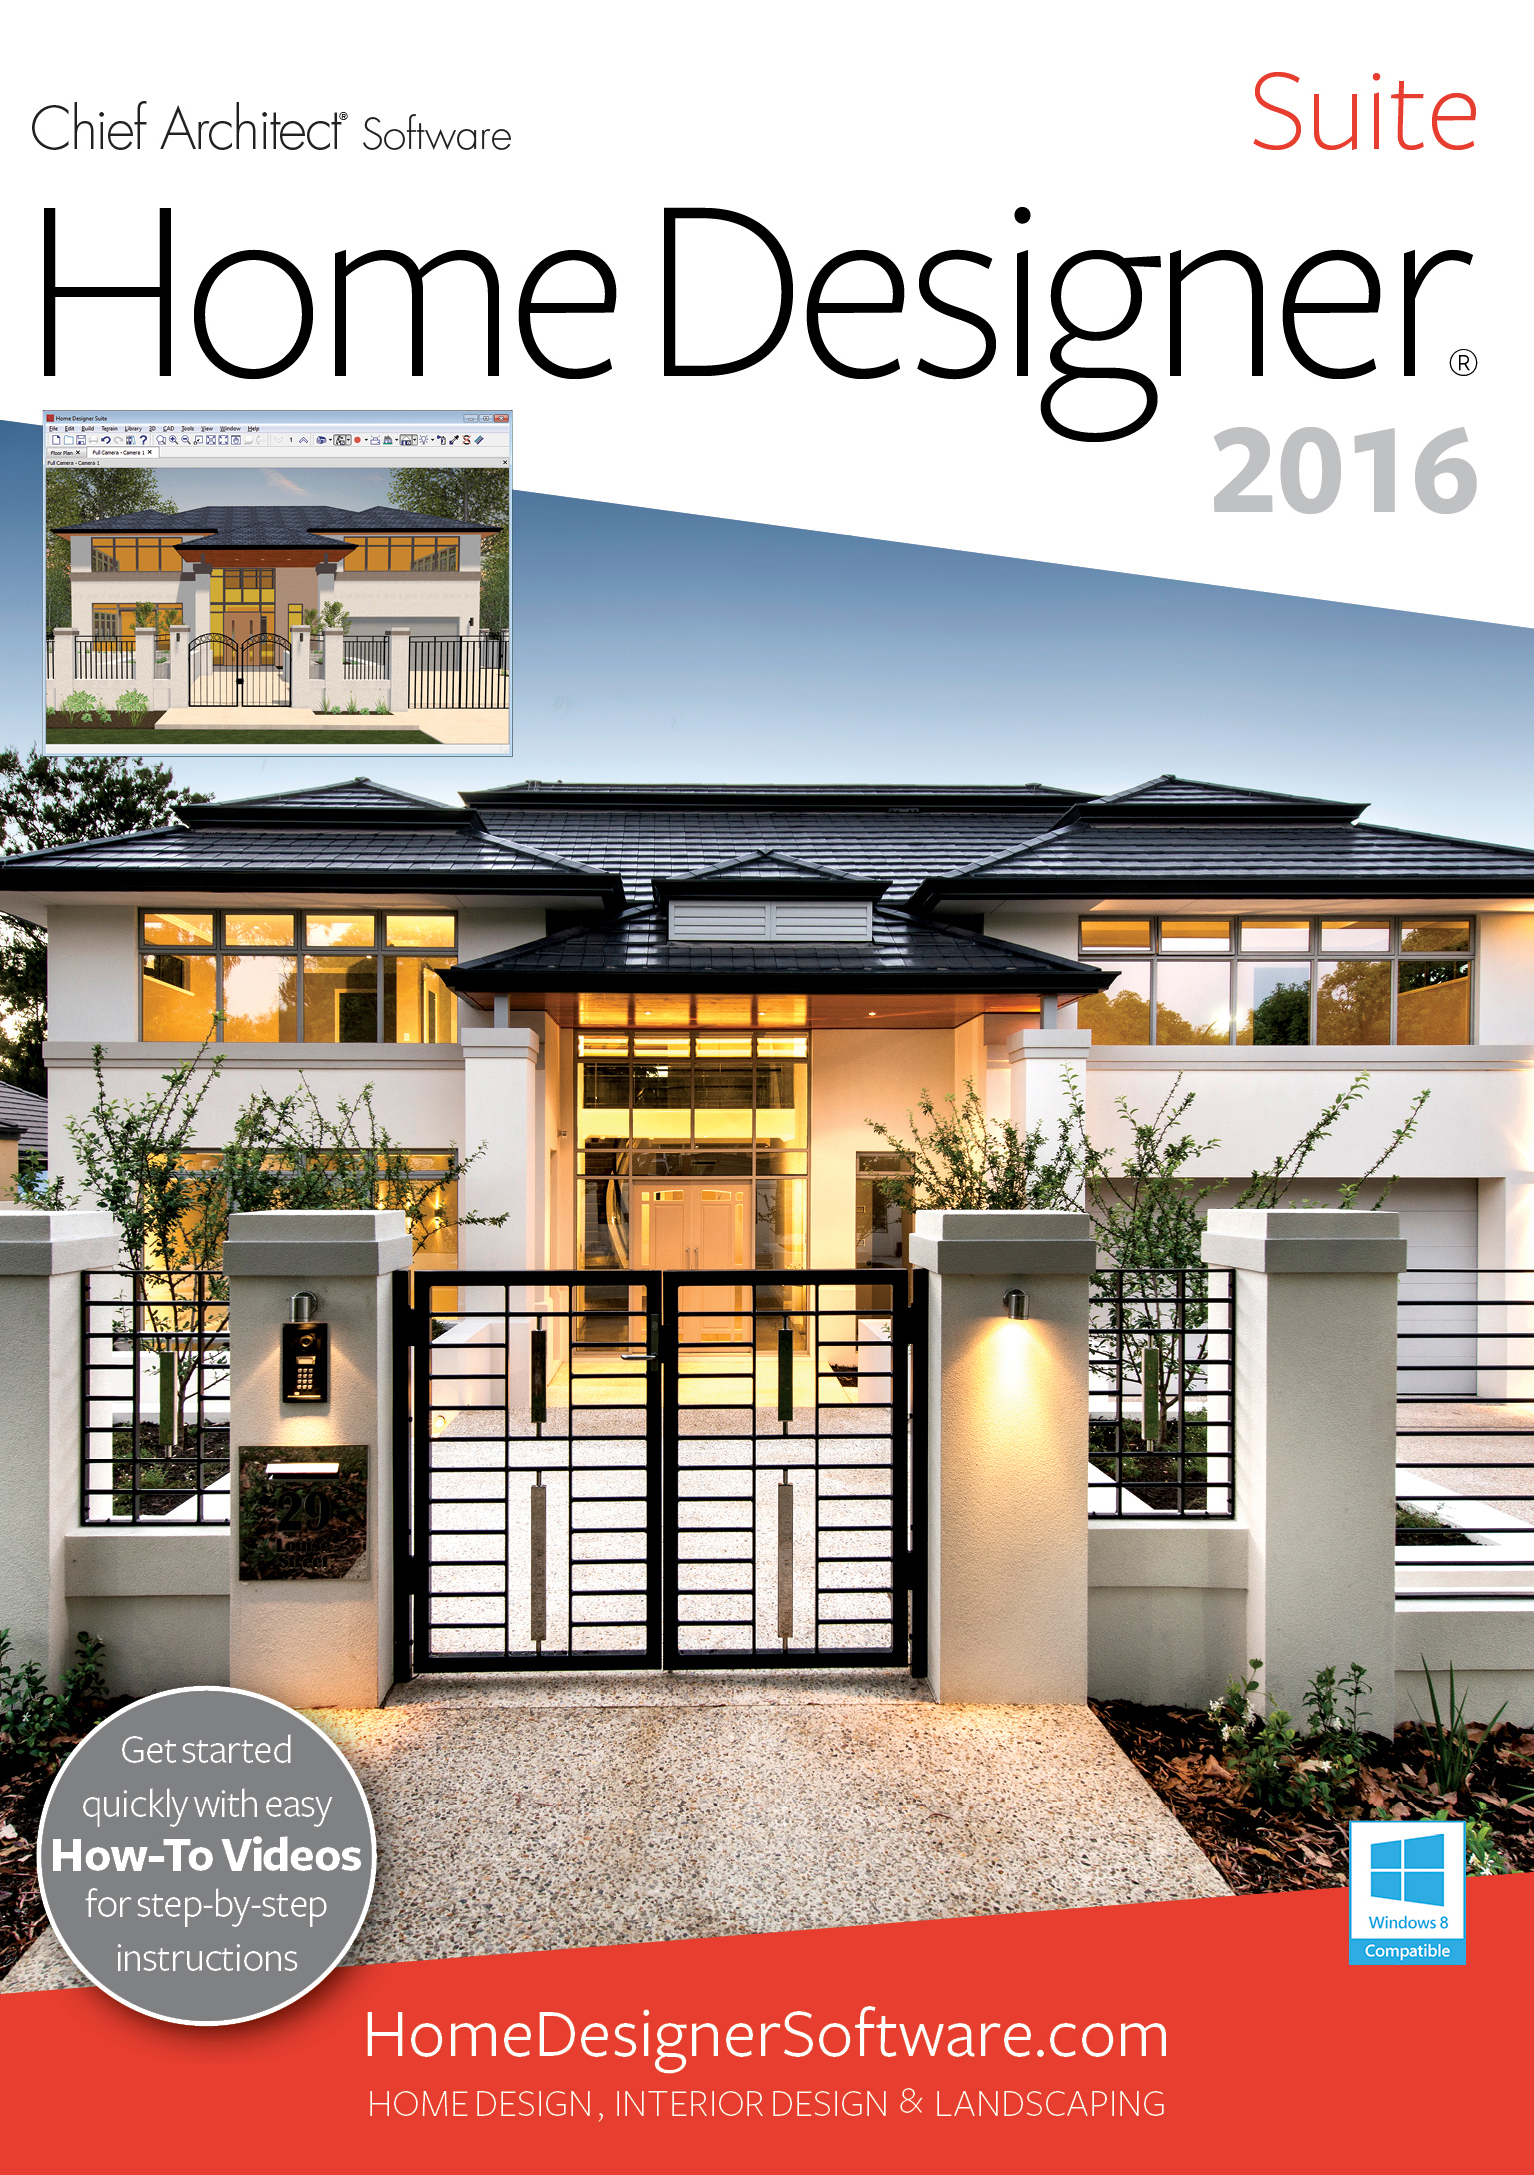 Amazon.com: Home Designer Suite 2016 [PC]: Software